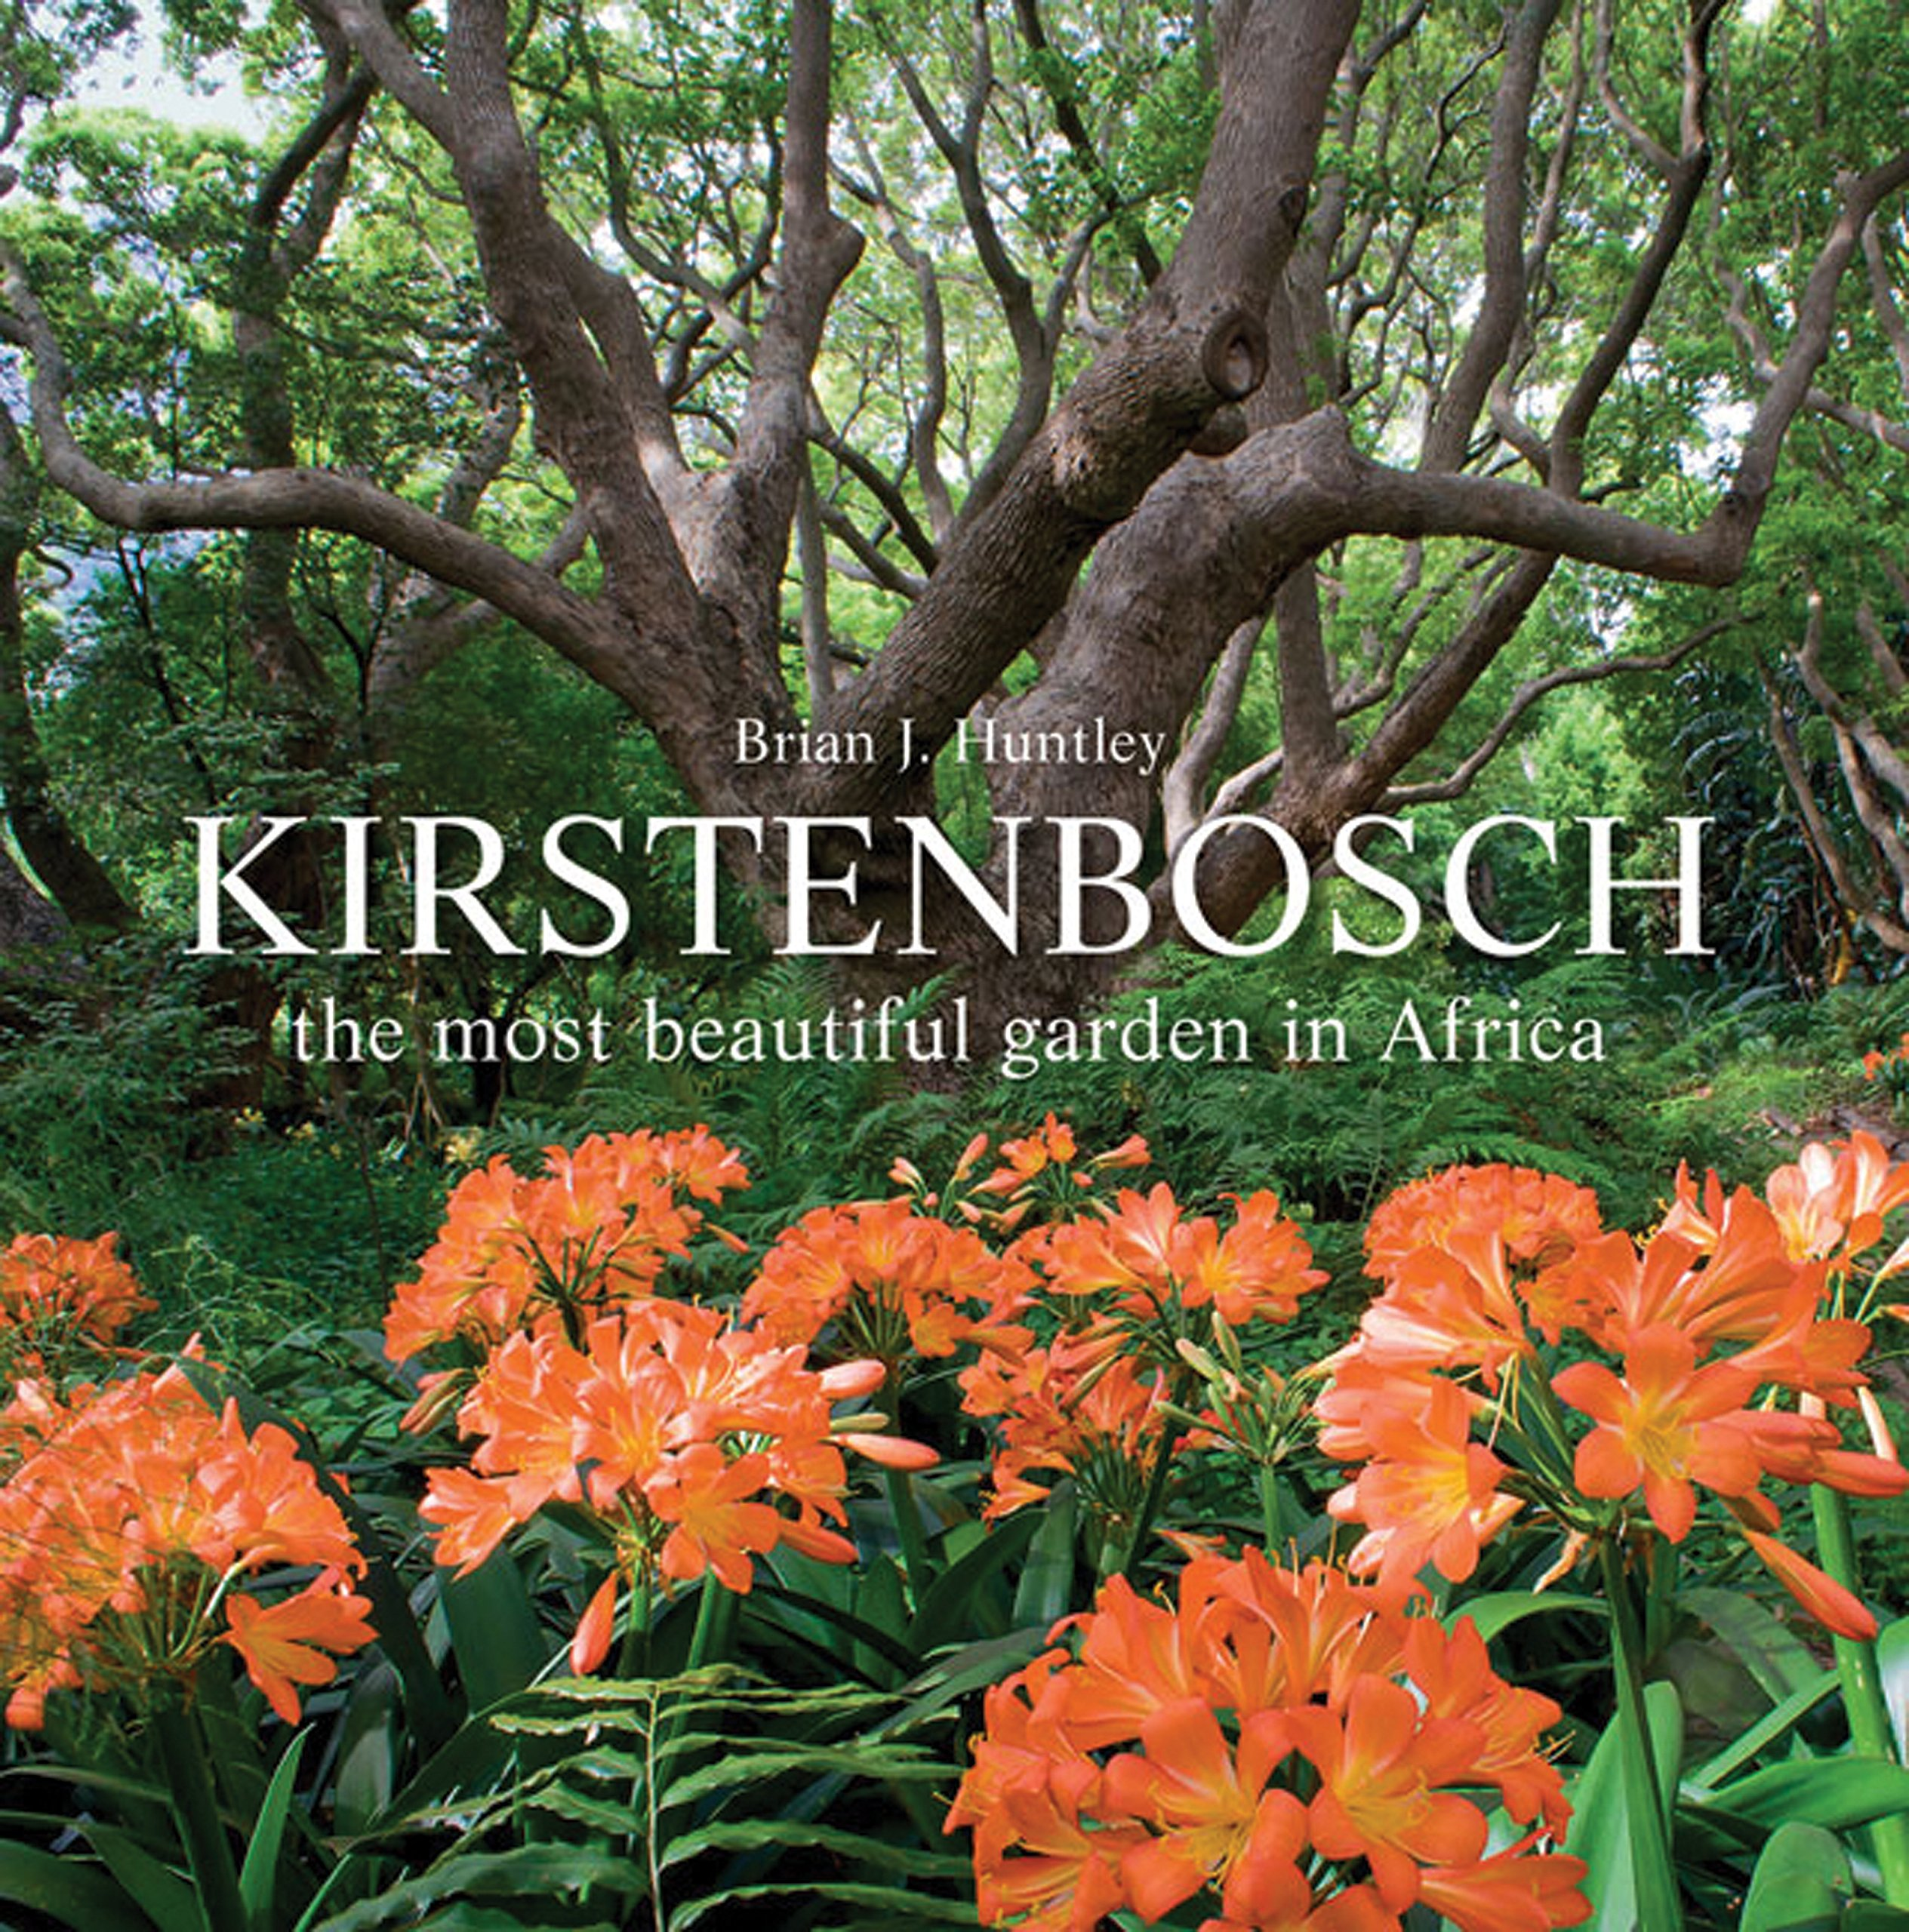 kirstenbosch-the-most-beautiful-garden-in-africa